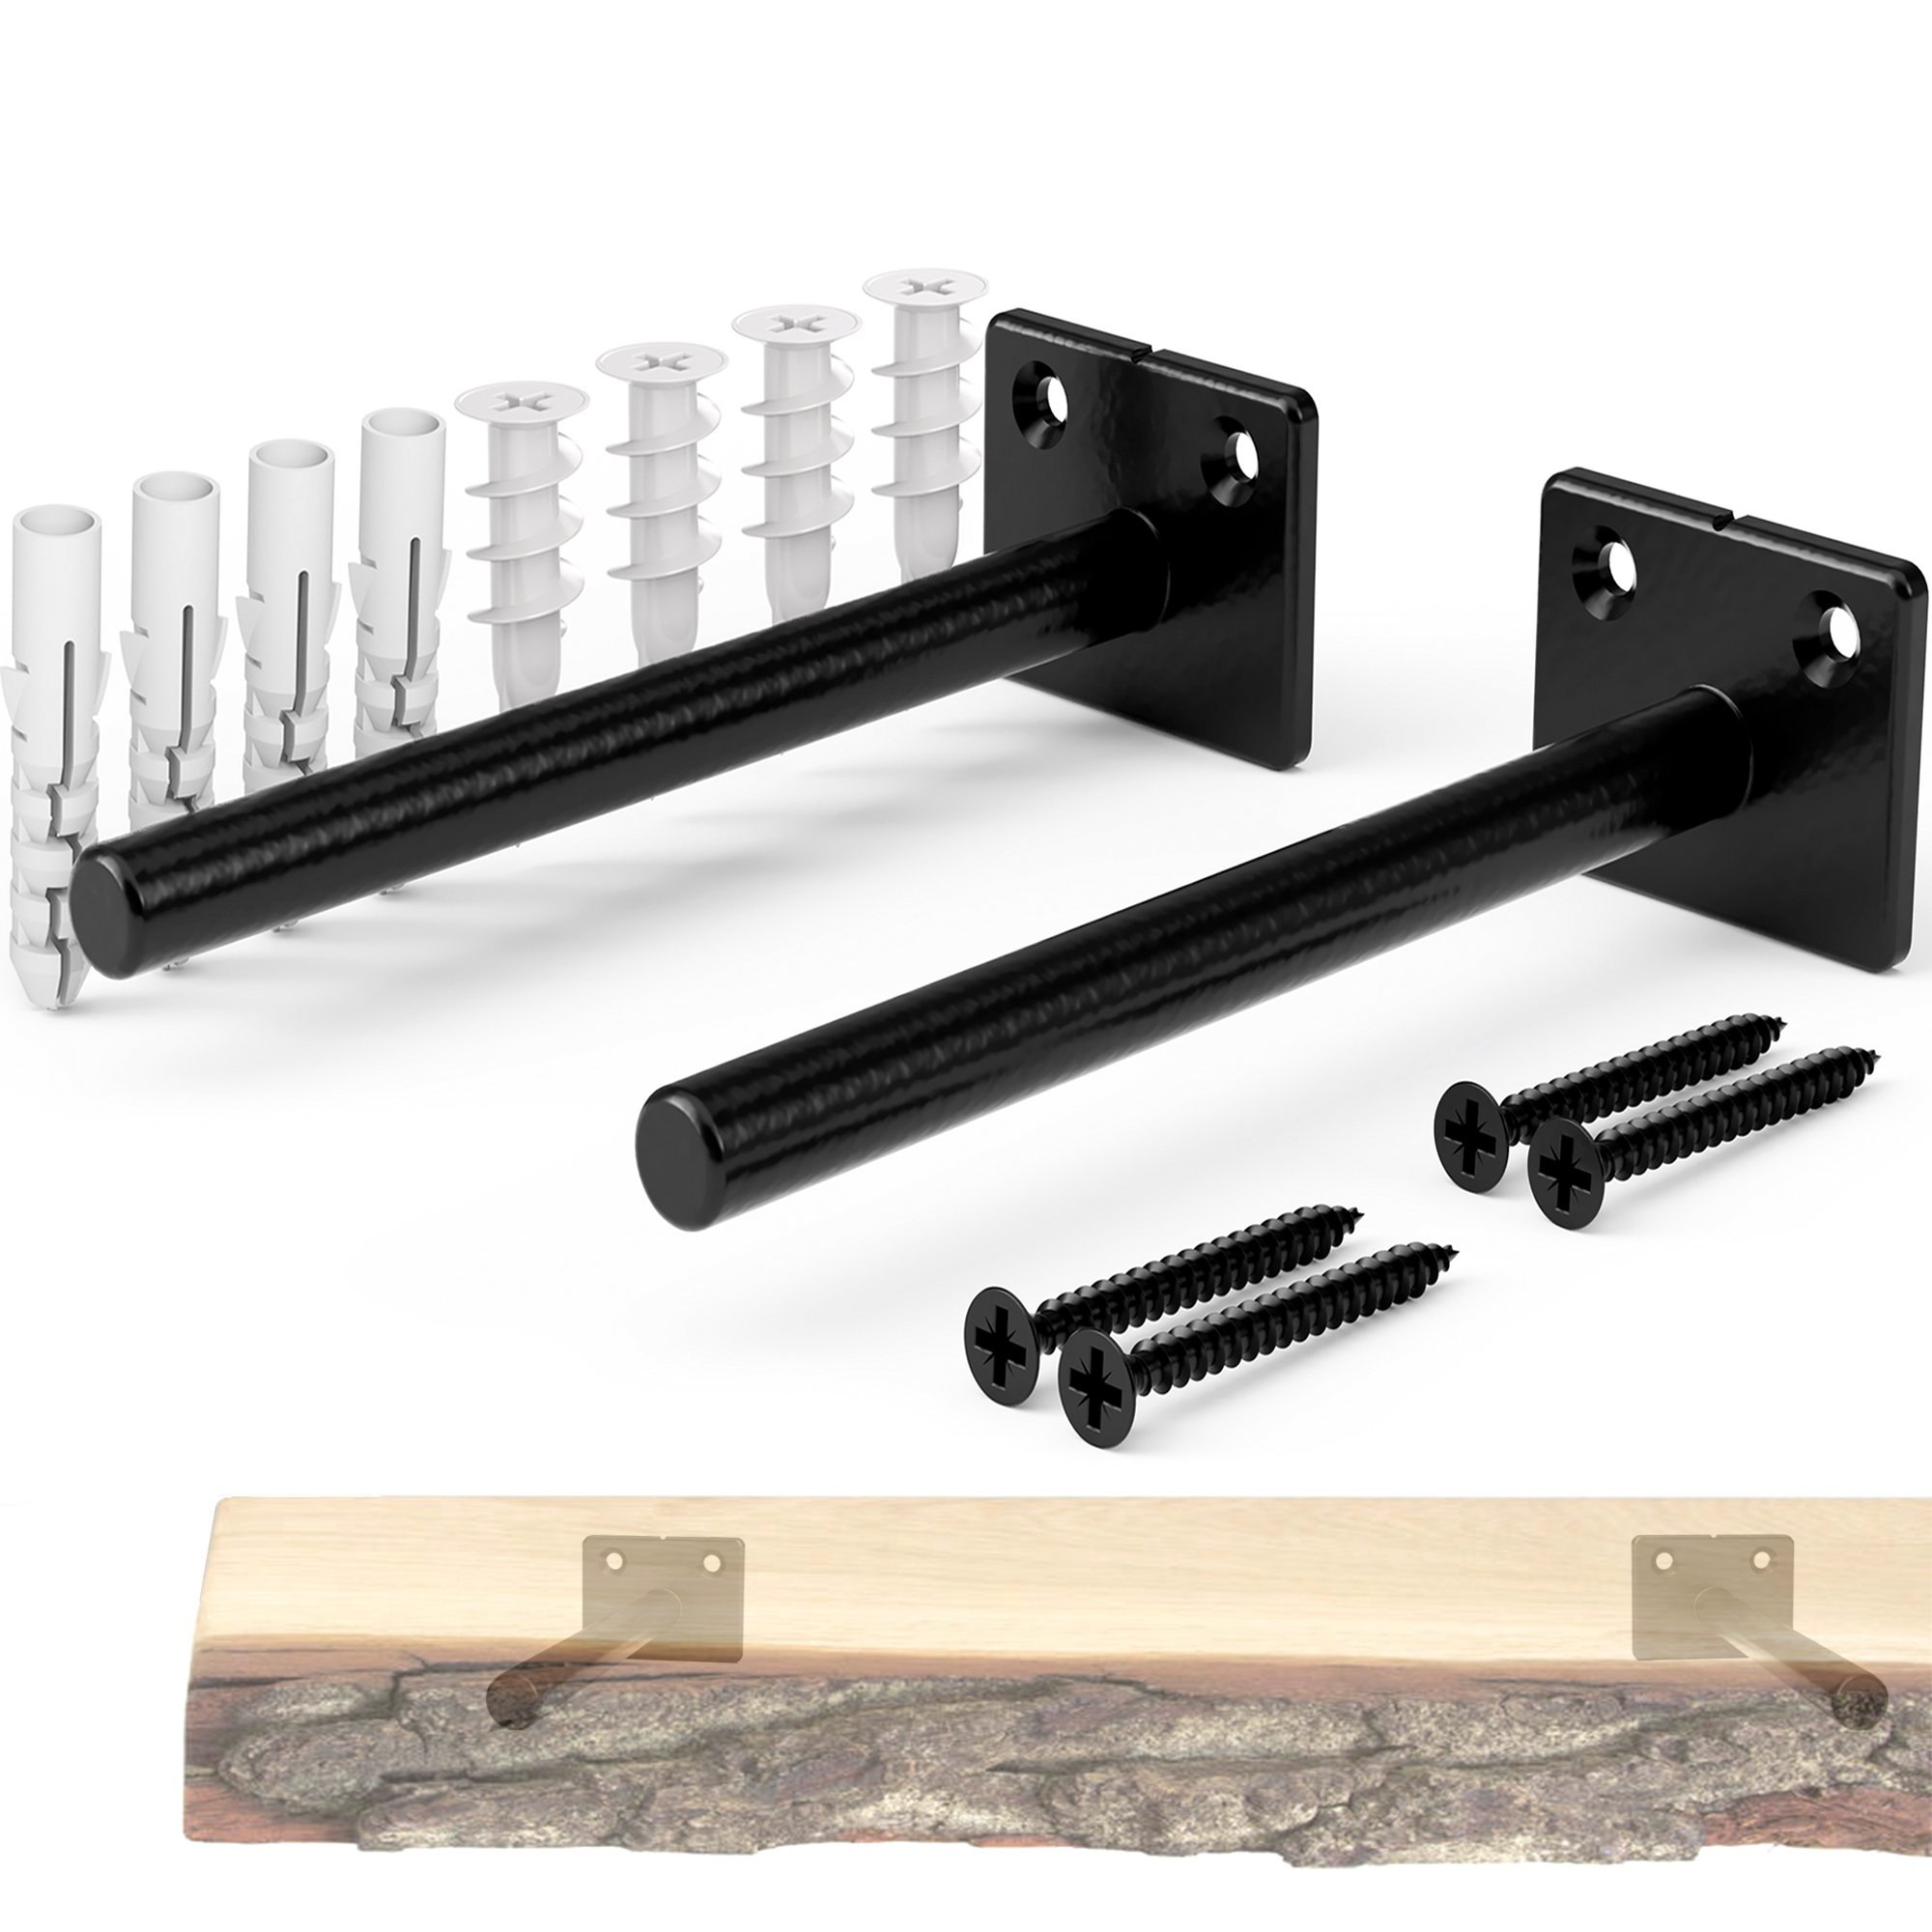 EVALD Floating Metal Shelf Bracket - Rustproof Solid Steel Blind Shelf Supports - 2 Brackets Including Screws & Anchors for Easy Drywall & Brickwall Mounting - Ideal for raw Edge Wood Shelves